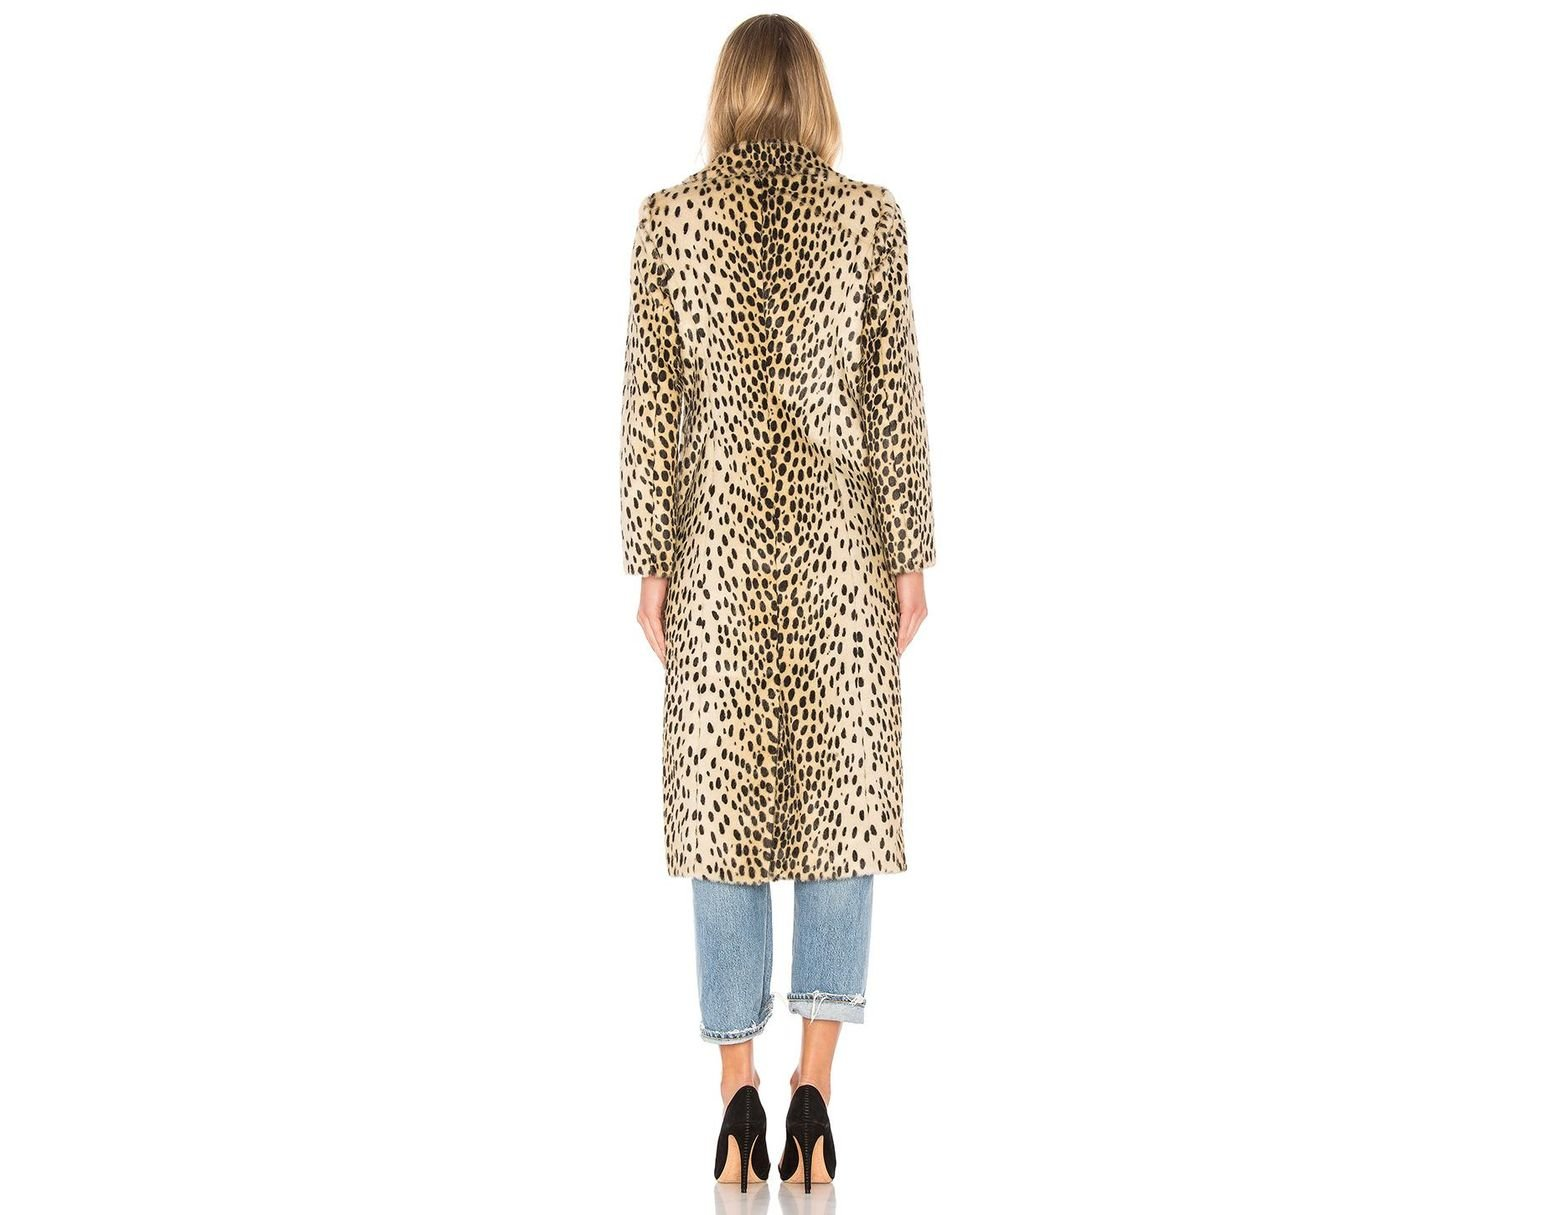 7a5ee6f850b9 House of Harlow 1960 X Revolve Perry Faux Fur Coat - Save 22% - Lyst